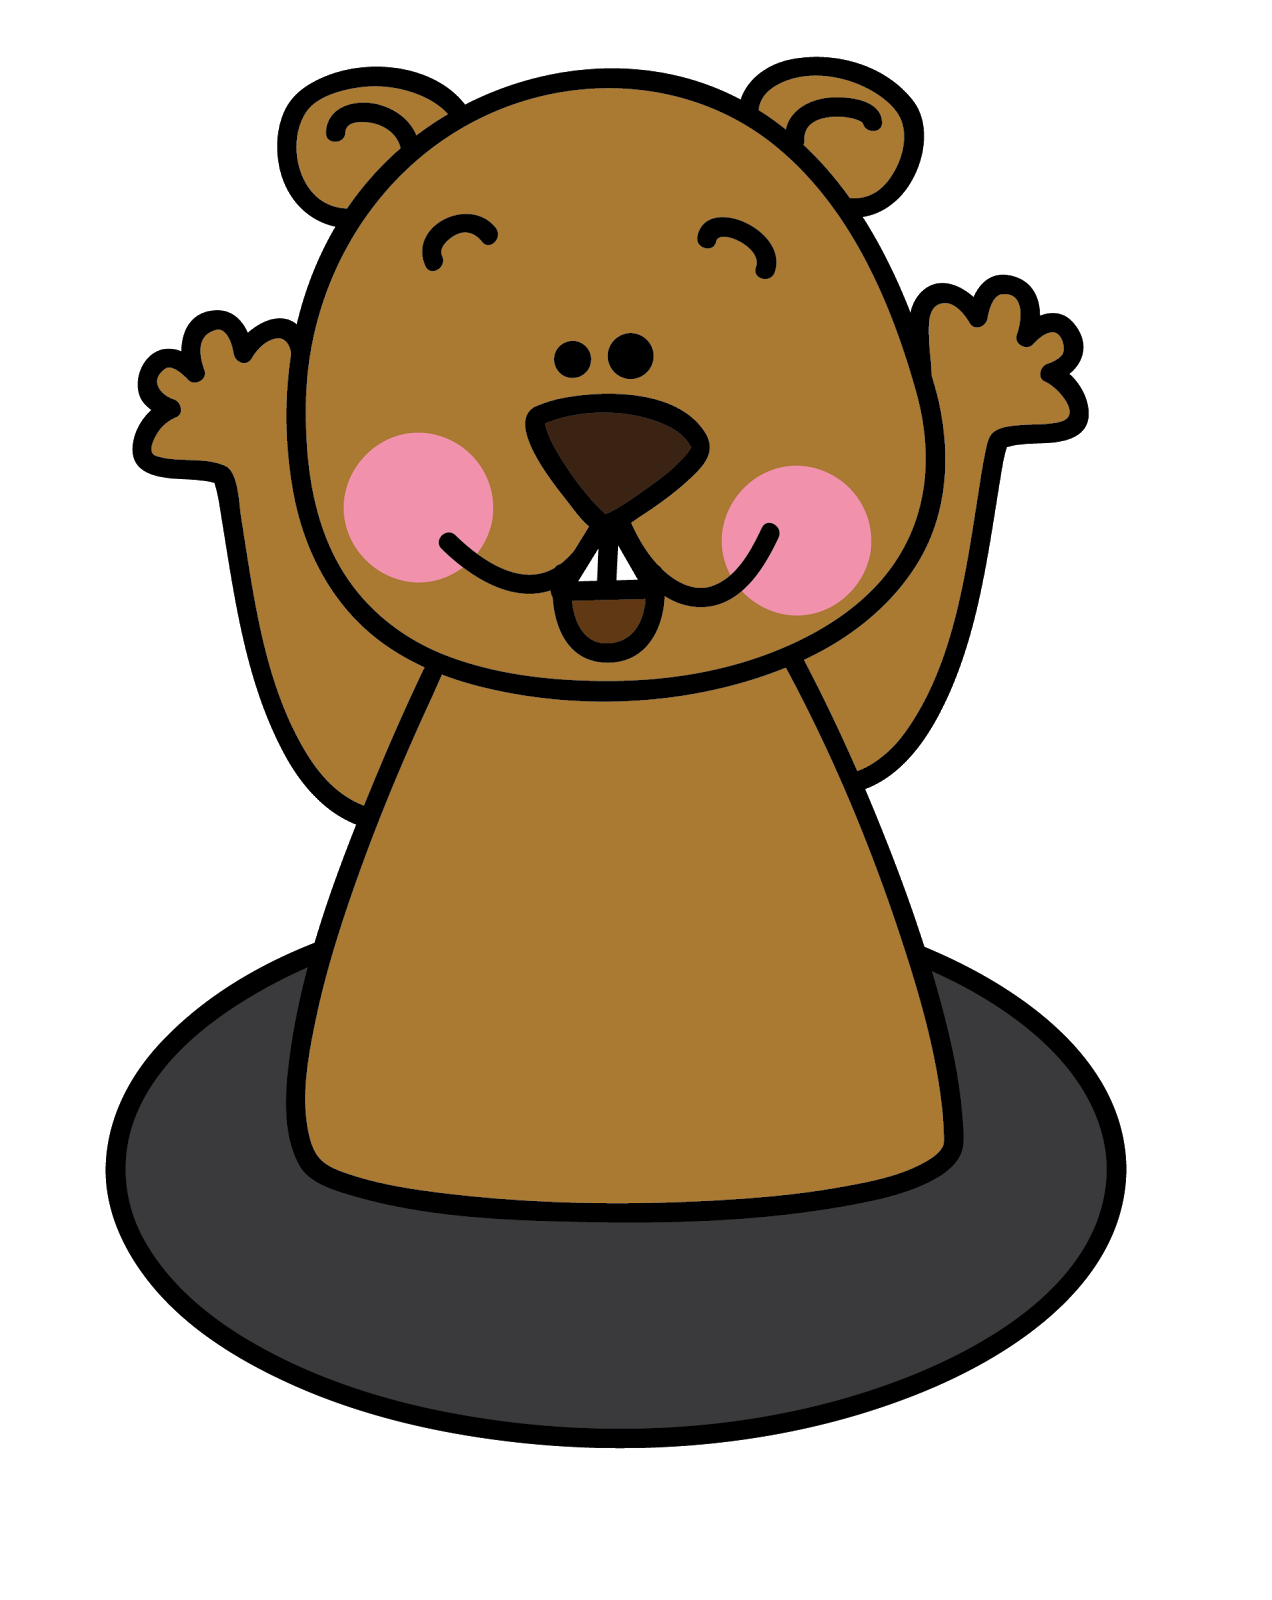 Groundhog clipart. Free cliparts download clip